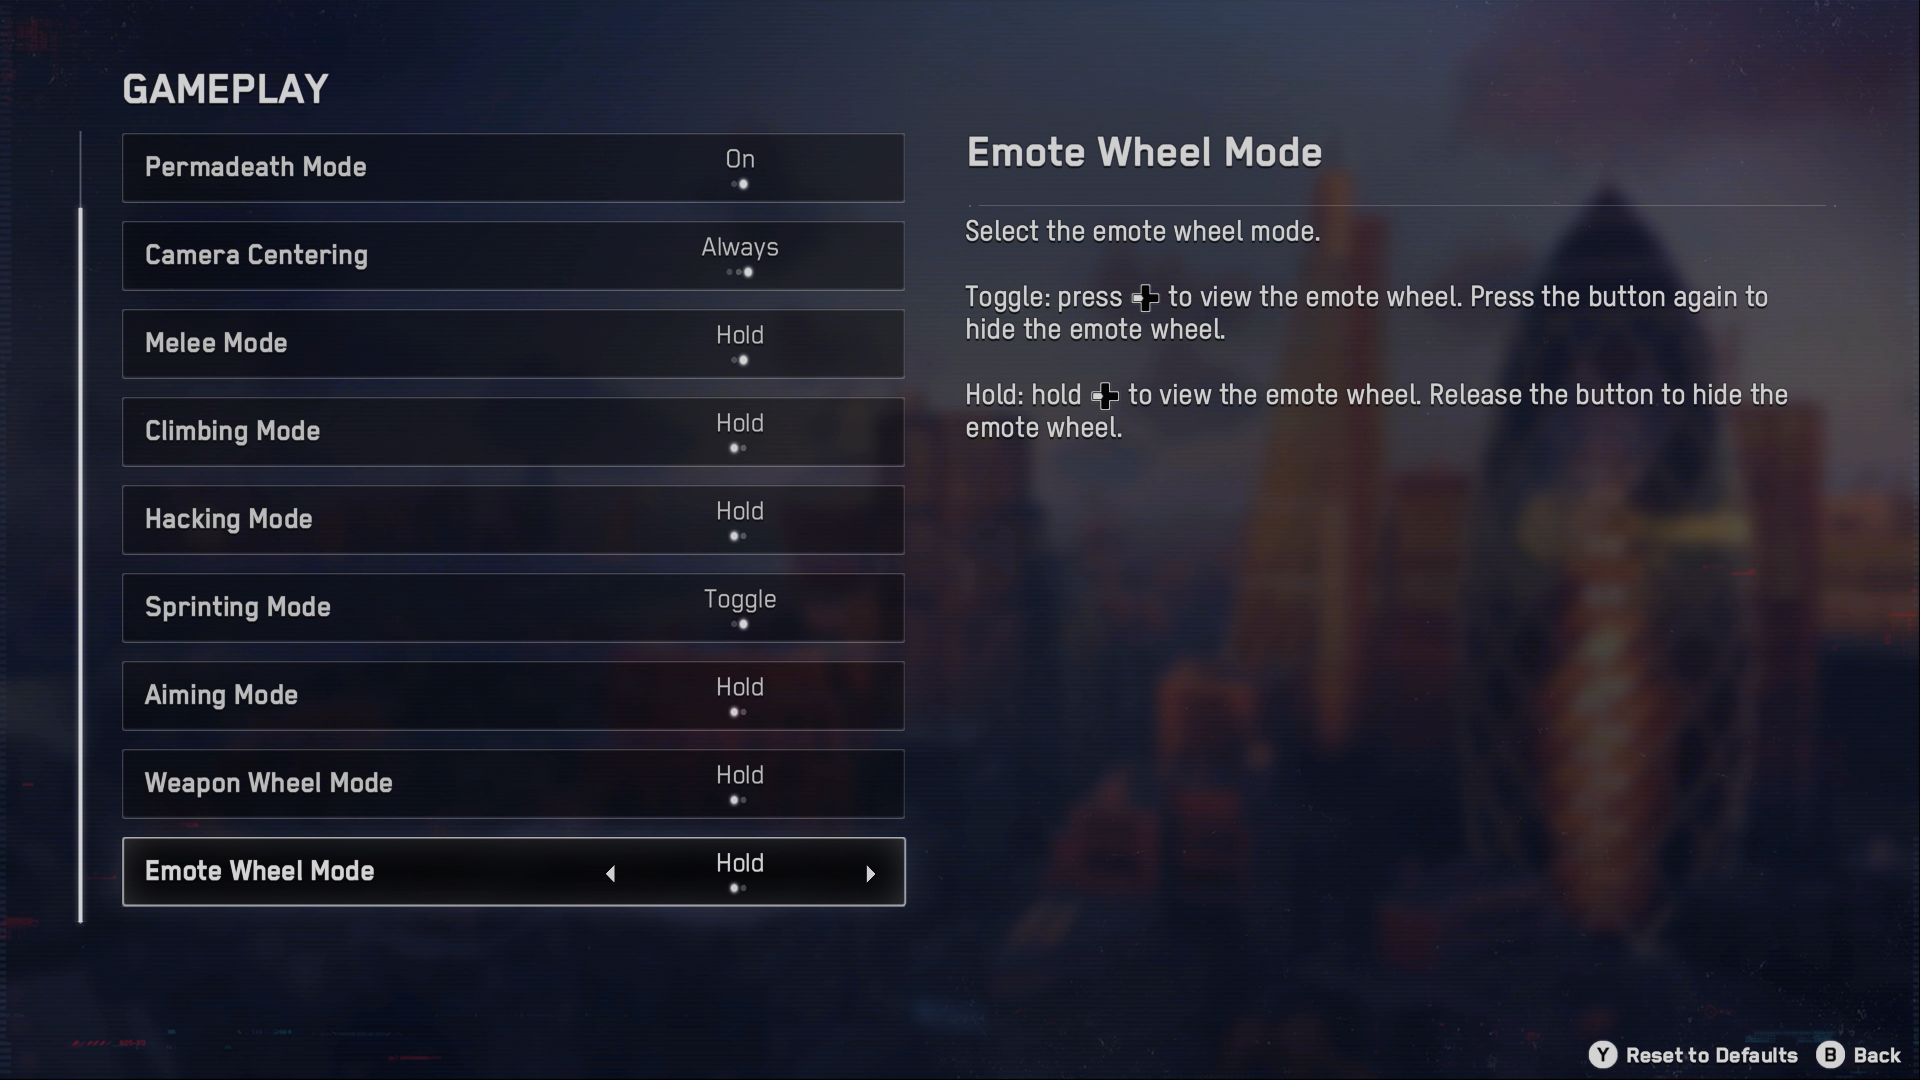 A screenshot of the Watch Dogs: Legion  Gameplay menu with Emote Wheel Mode option highlighted currently.